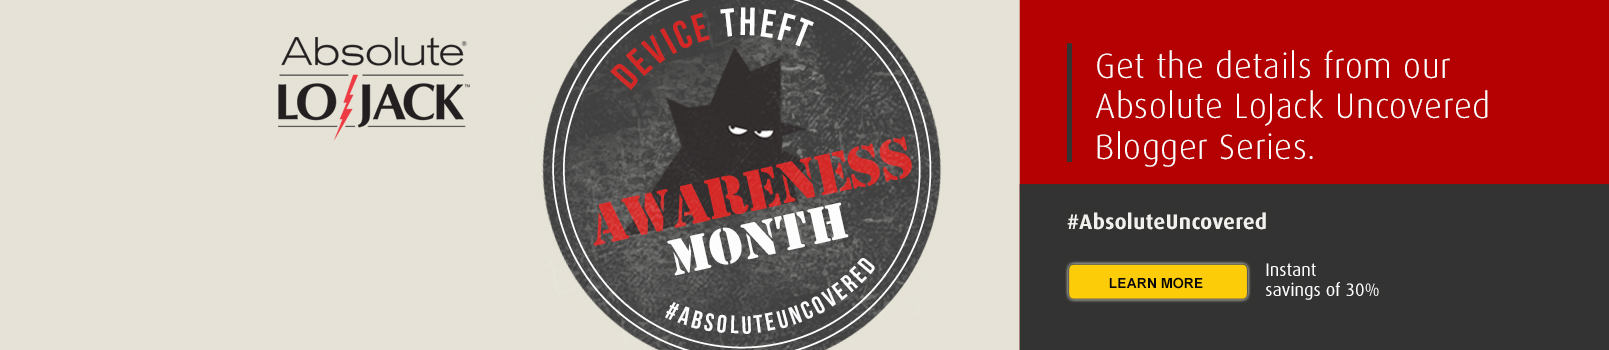 Device Theft Awareness Month - Absolute LoJack Uncovered